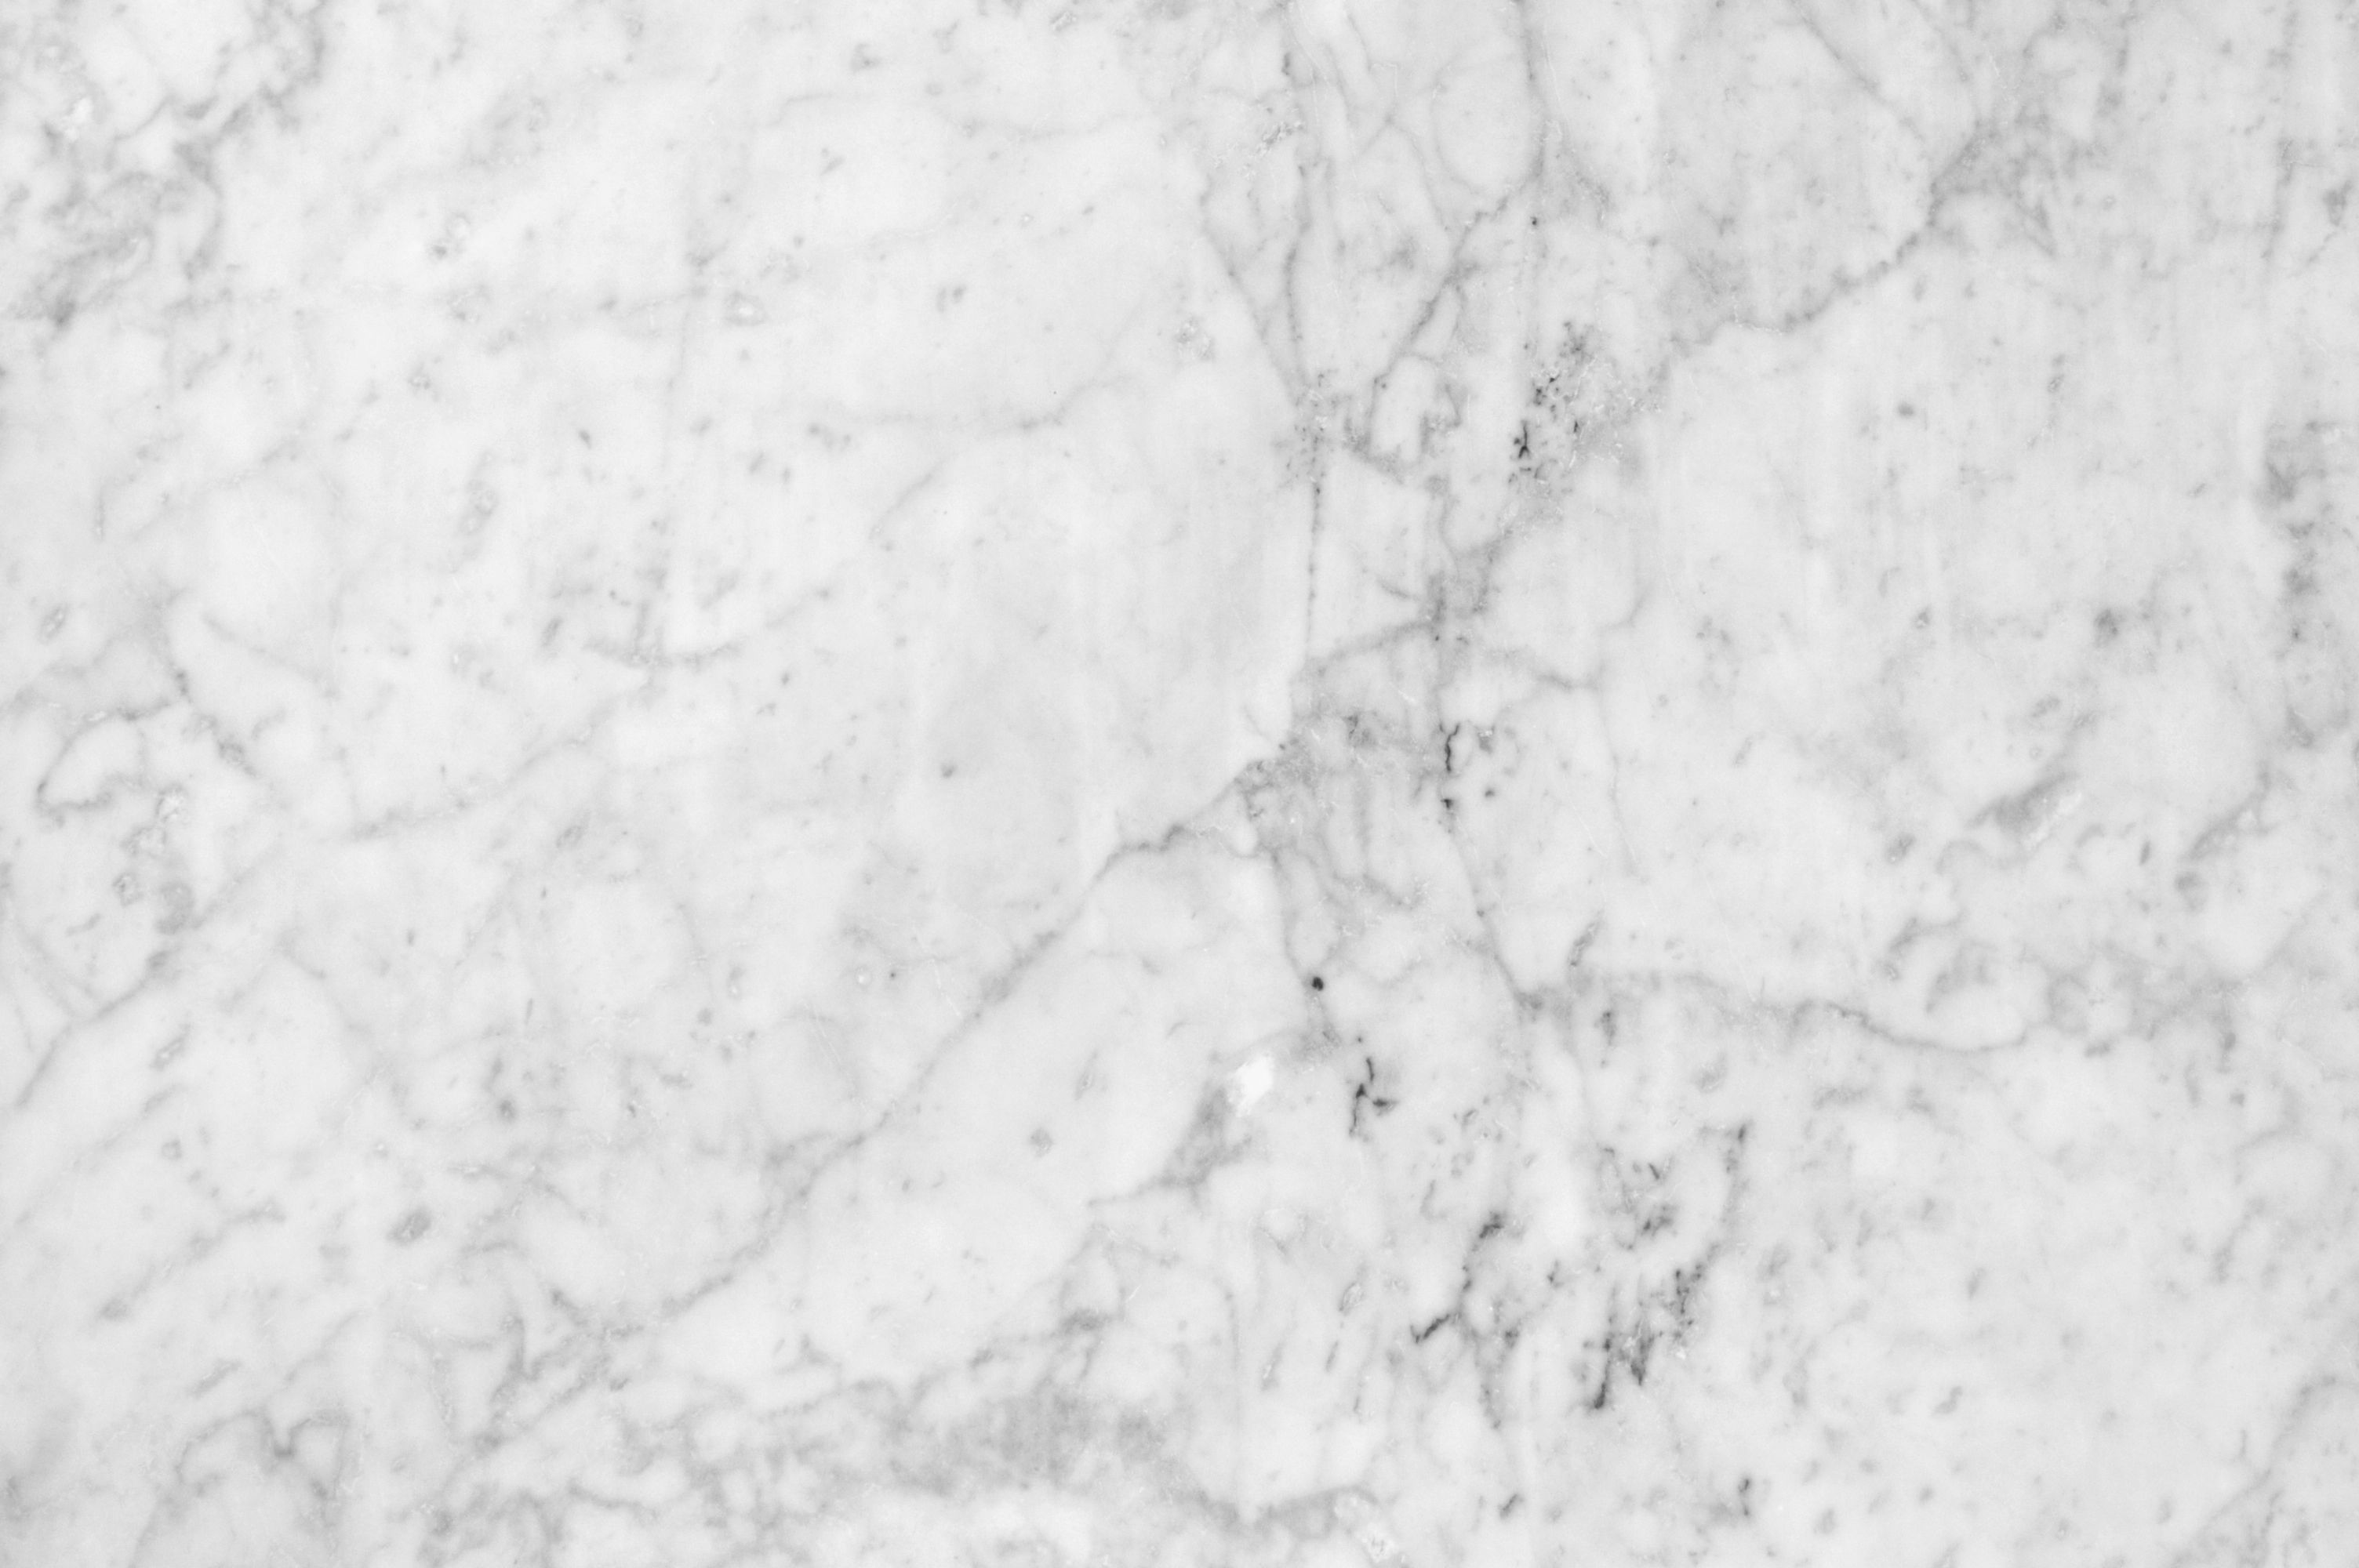 white_marble_texture_by_hugoljd8a93g7.jpg (3008×2000